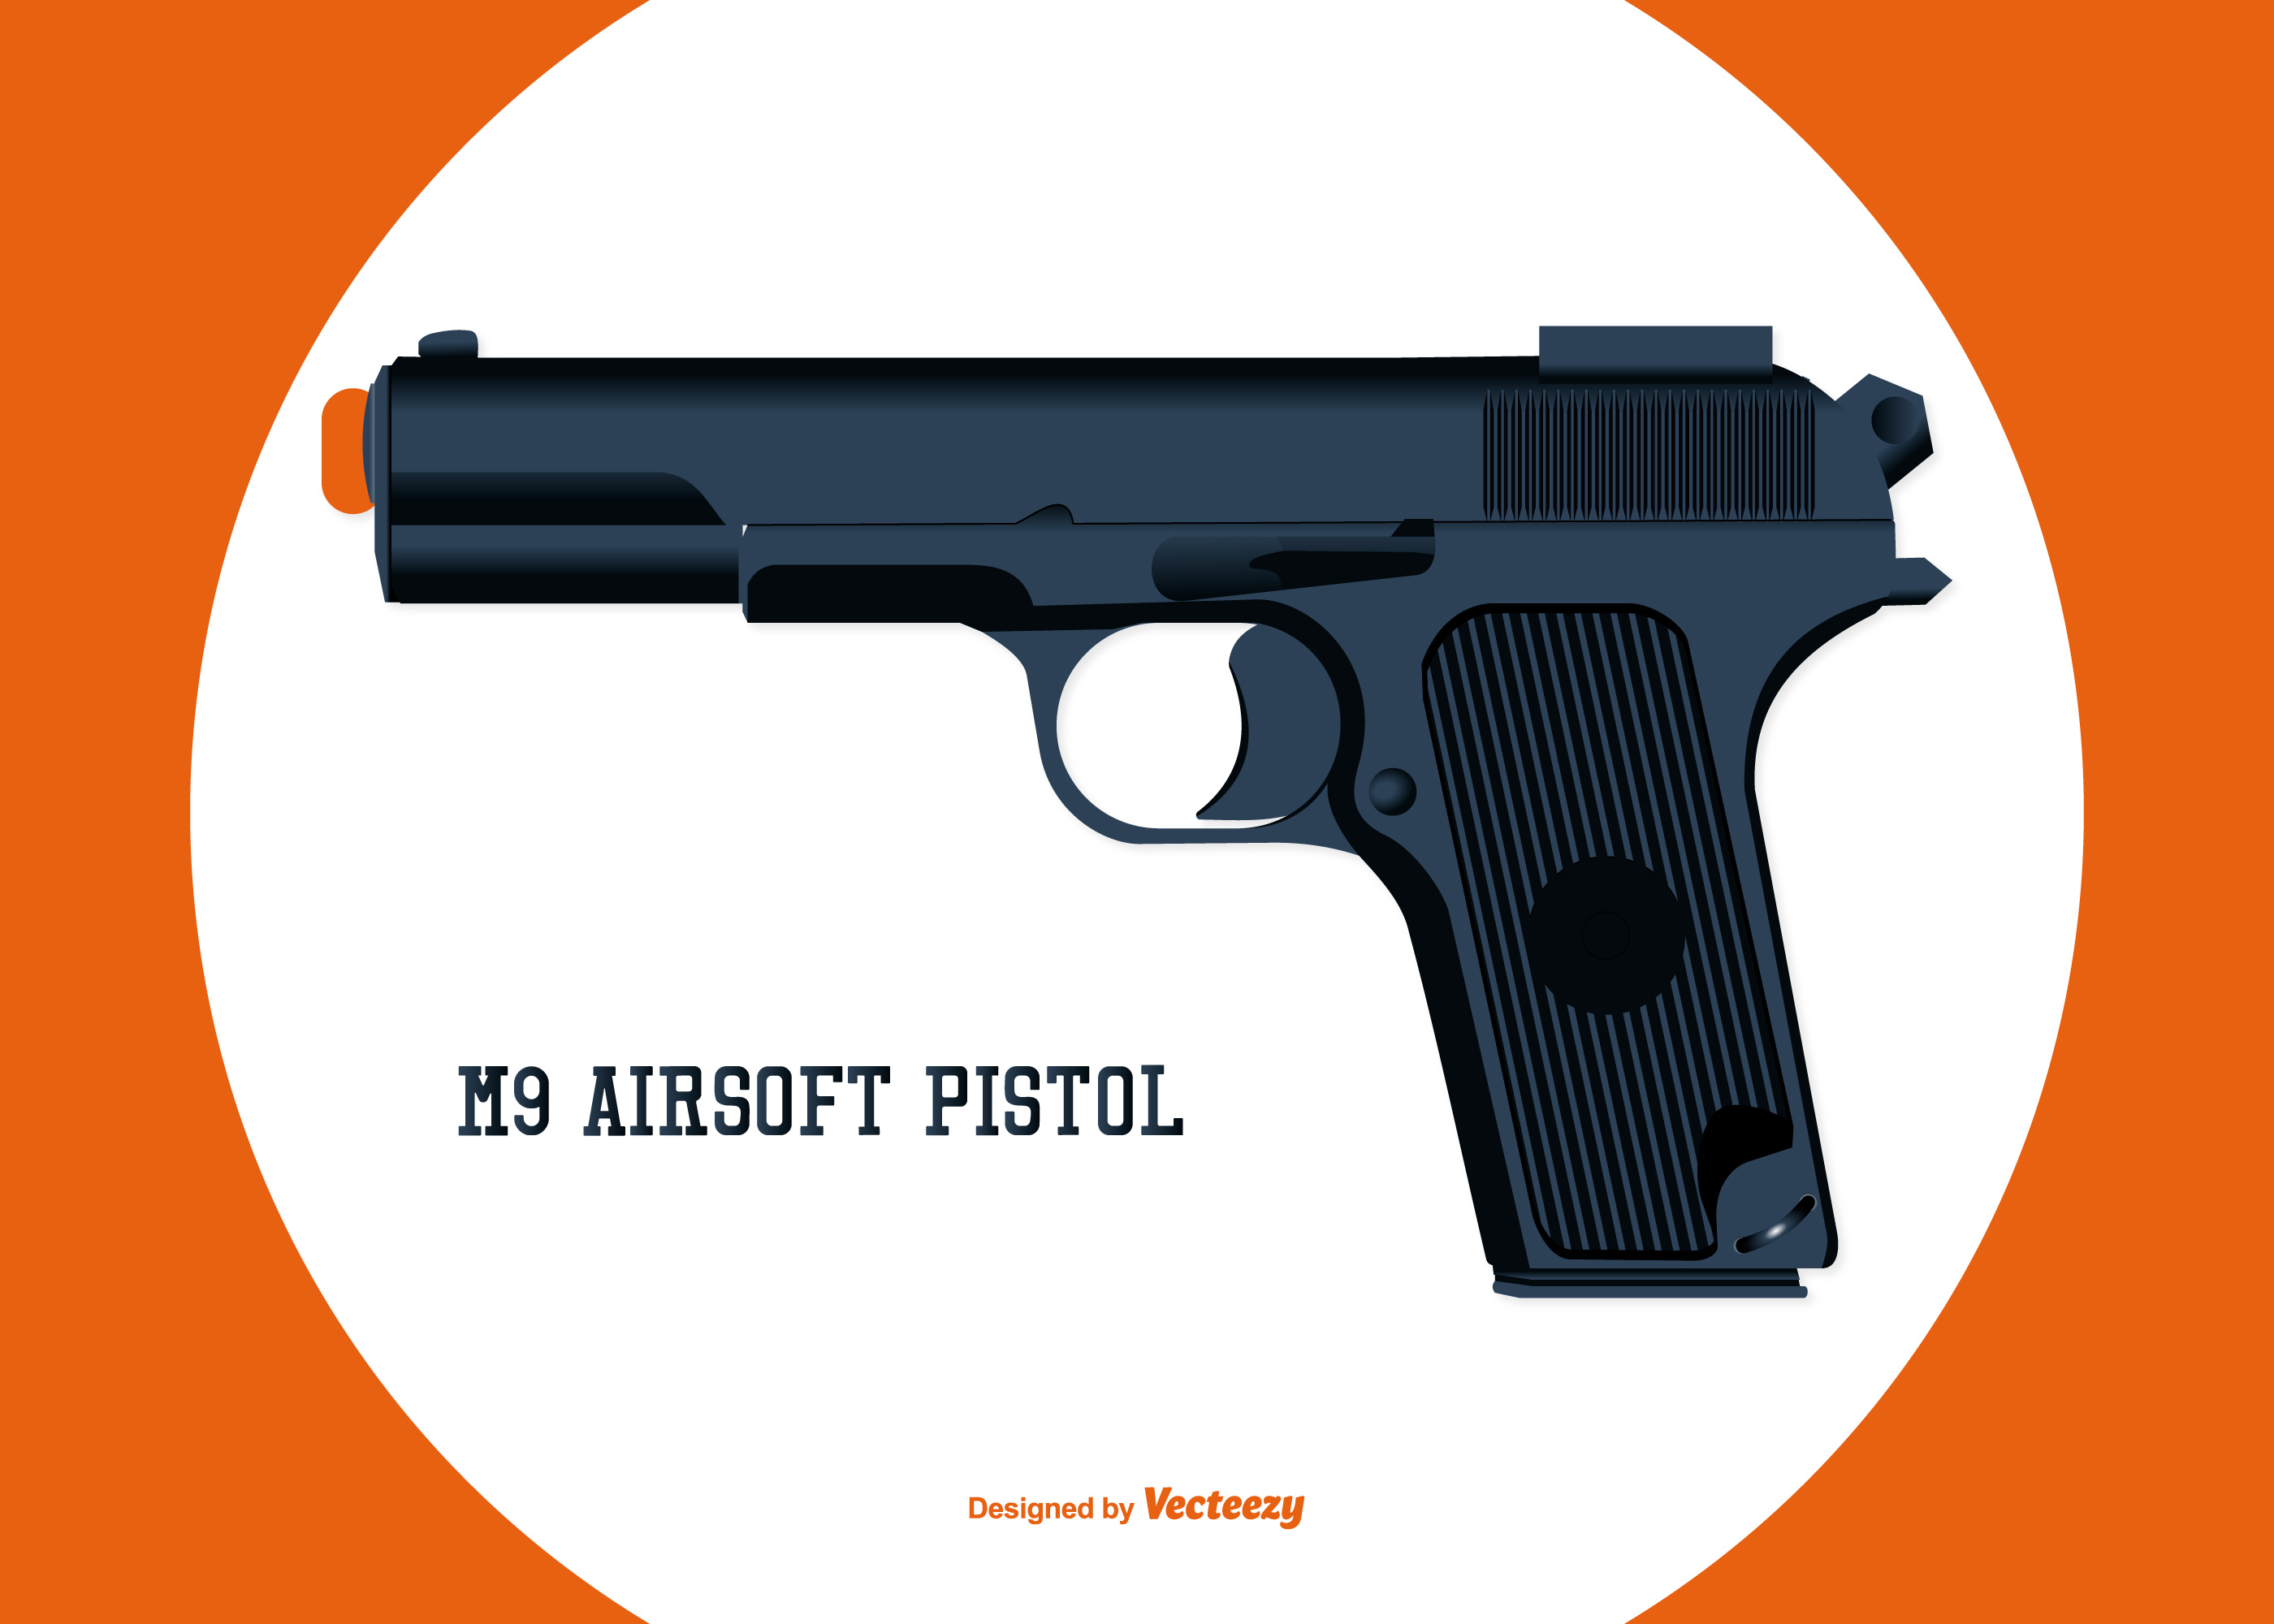 pistol free vector art 3 398 free downloads https www vecteezy com vector art 170919 vector airsoft pistol illustration